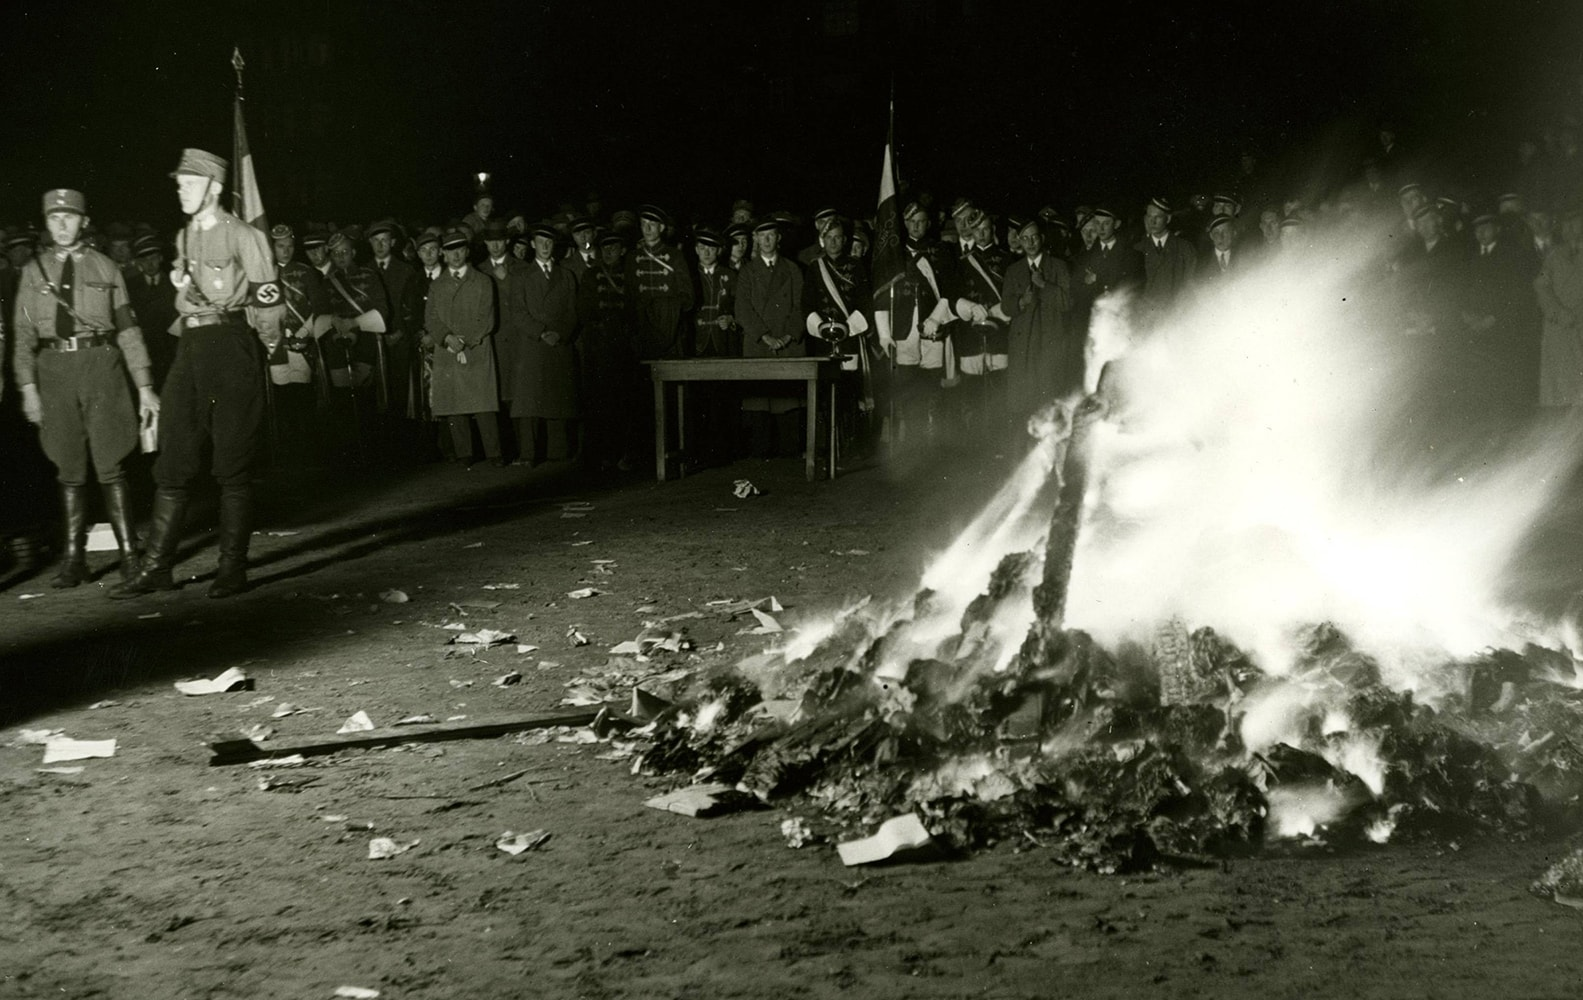 Burning controversial books